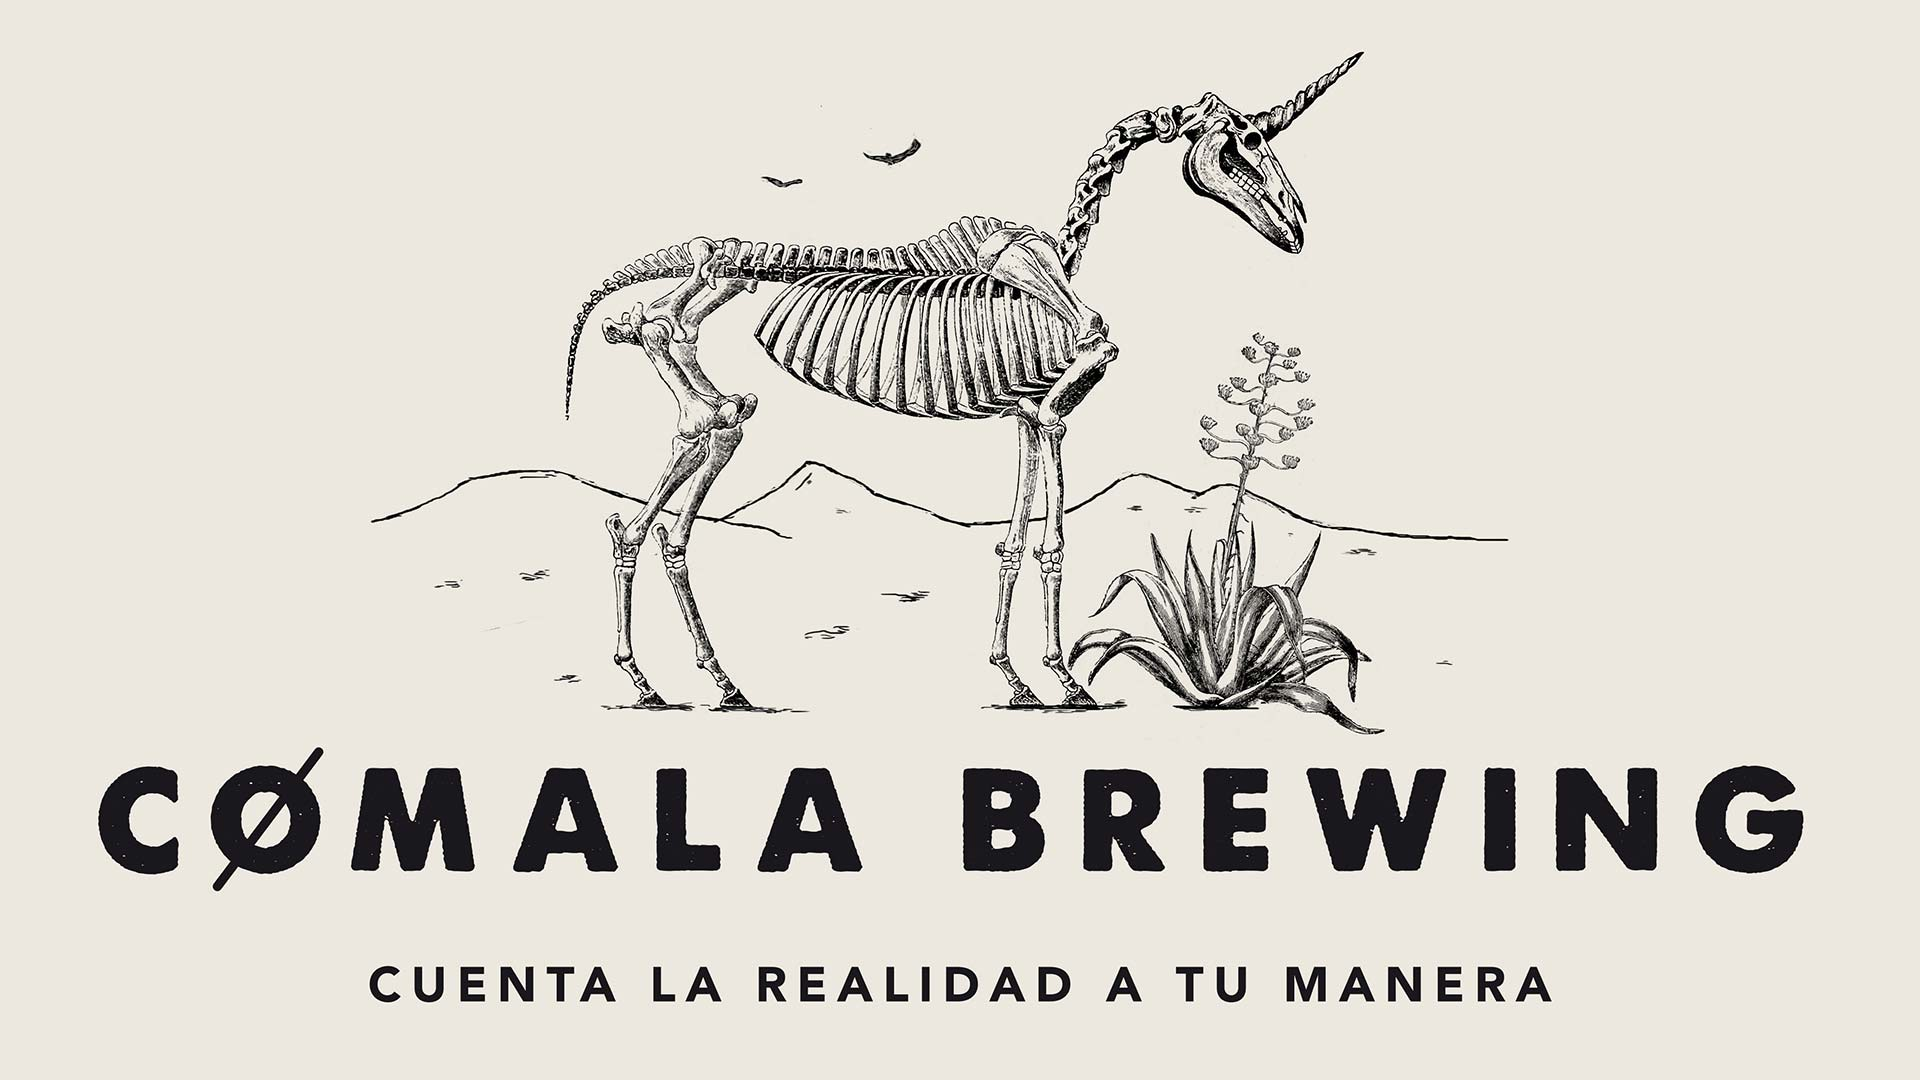 Comala Brewing